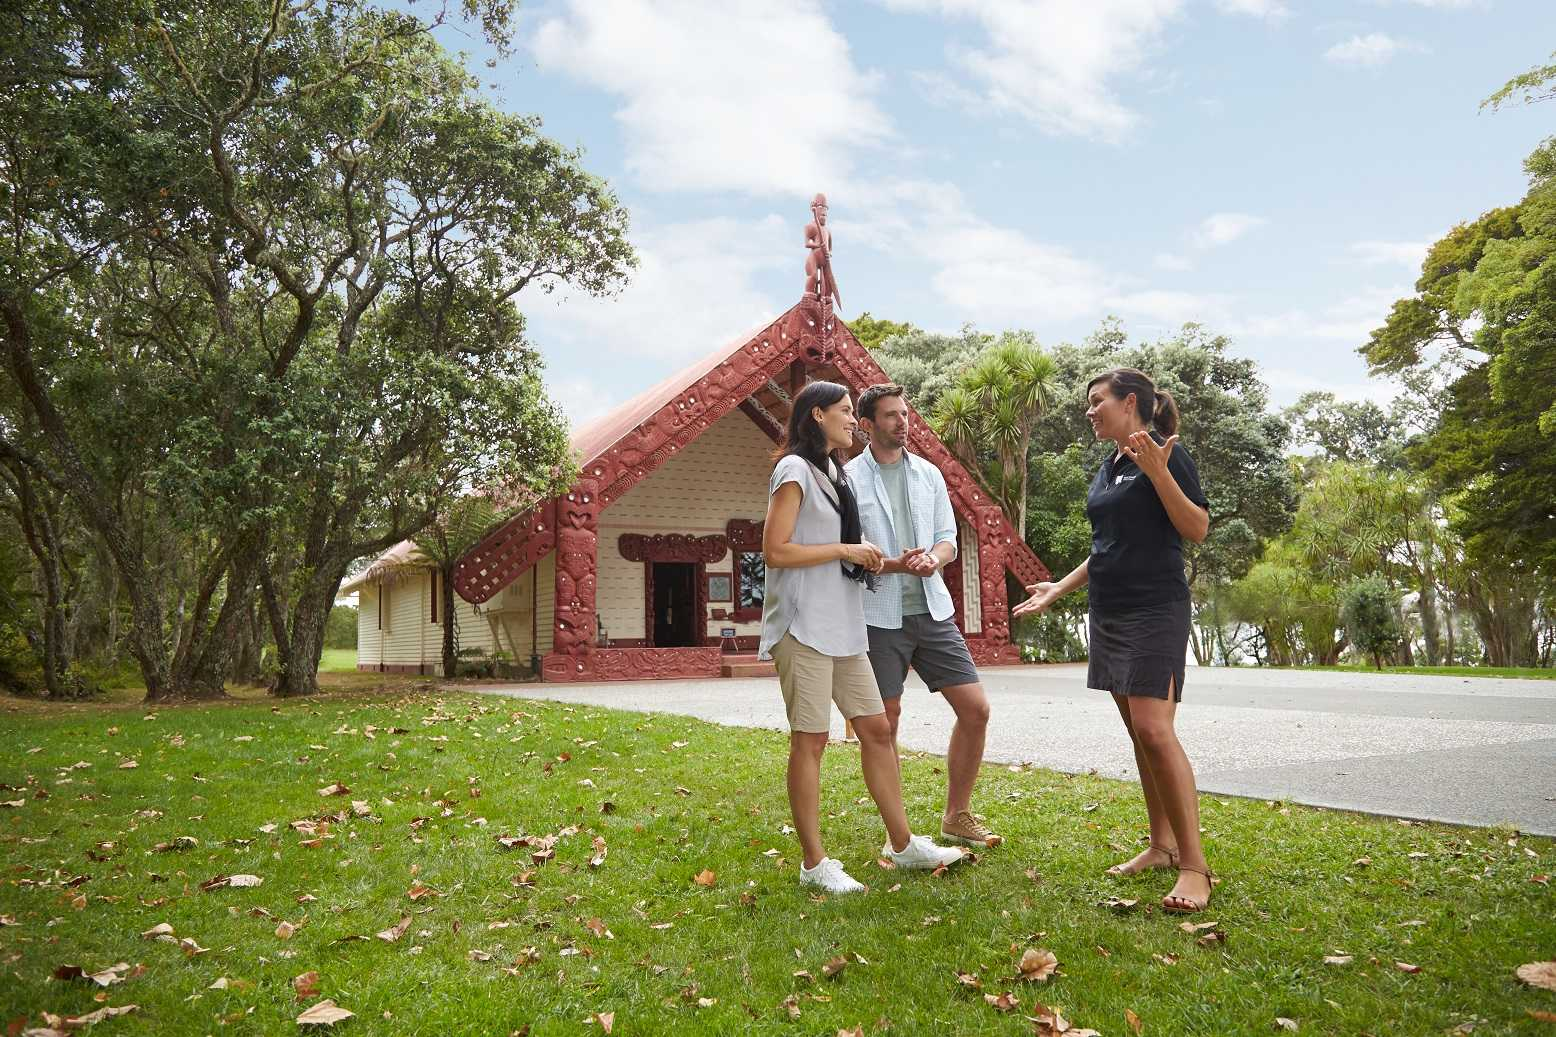 culture of new zealand Welcome to new zealand get official travel information, maps, itineraries,  activities & accommodation to help you plan your next holiday to new zealand.